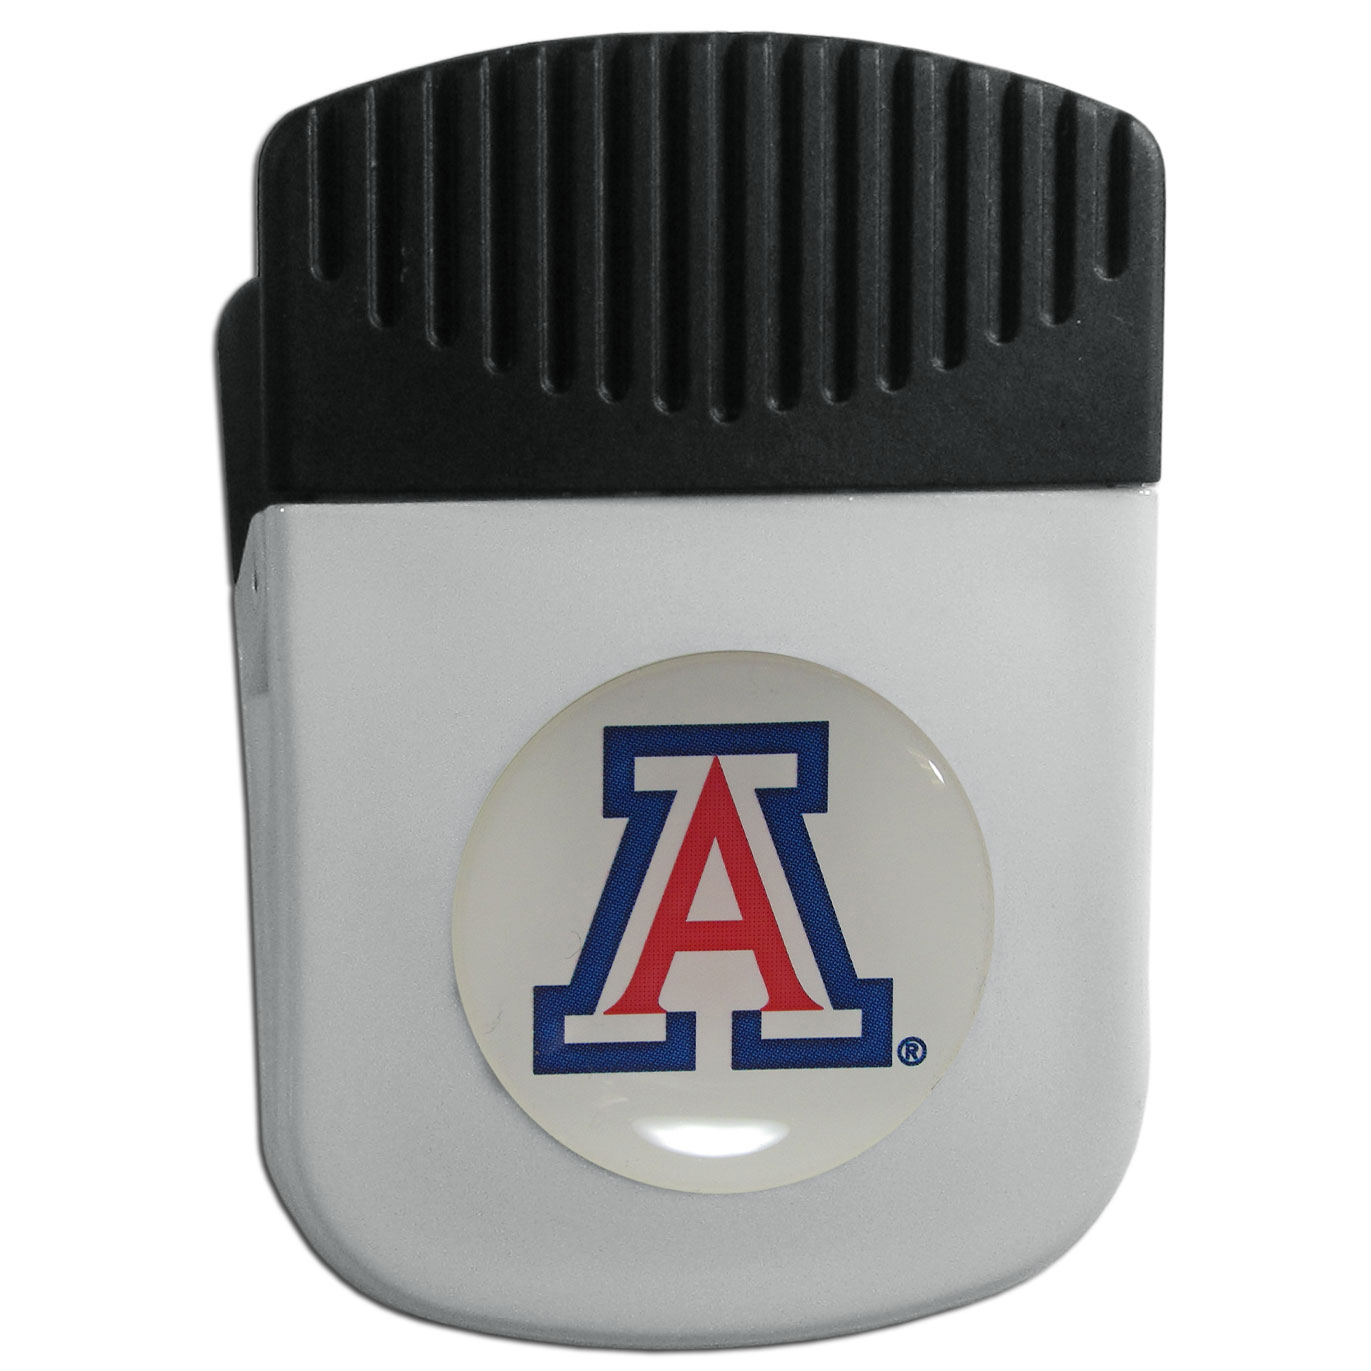 Arizona Wildcats Chip Clip Magnet - Use this attractive clip magnet to hold memos, photos or appointment cards on the fridge or take it down keep use it to clip bags shut. The magnet features a domed Arizona Wildcats logo.